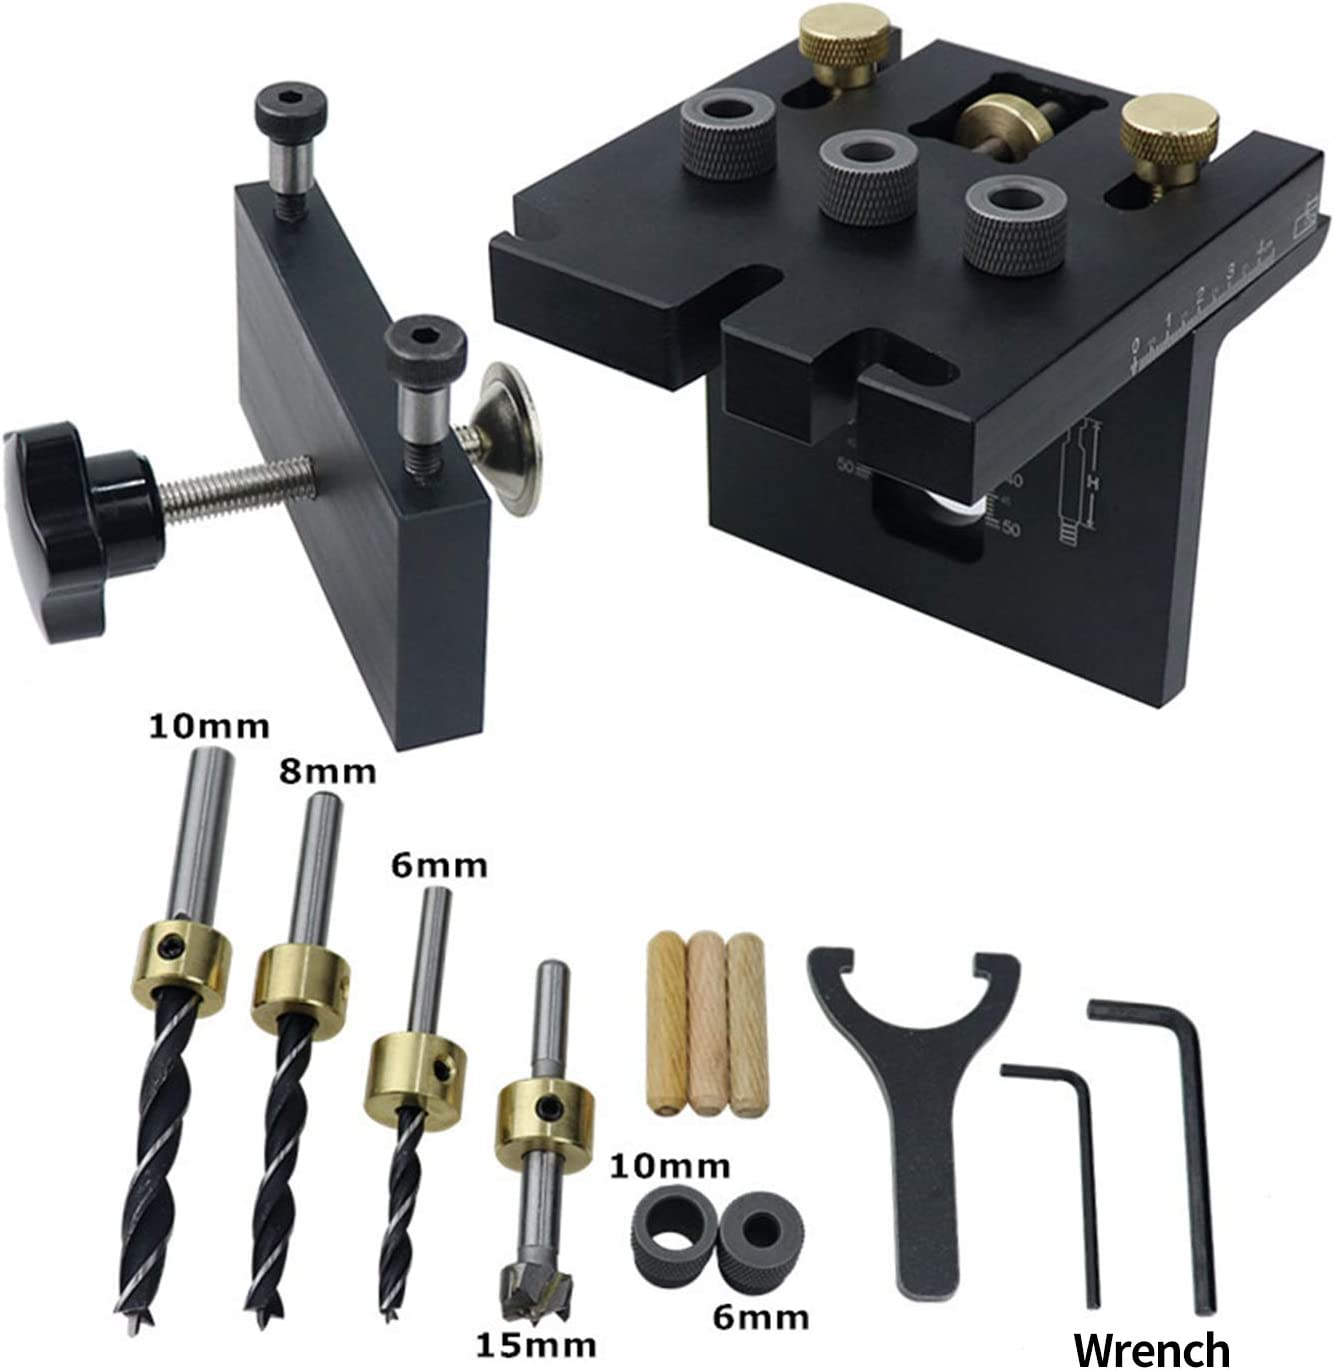 3-in-1 Woodworking Drilling Locator Hole Puncher Self Center Dowel Jig Kit Precision Aluminum Alloy Carpentry Positioning Drilling Kit Wood Working Drill Guide Kit